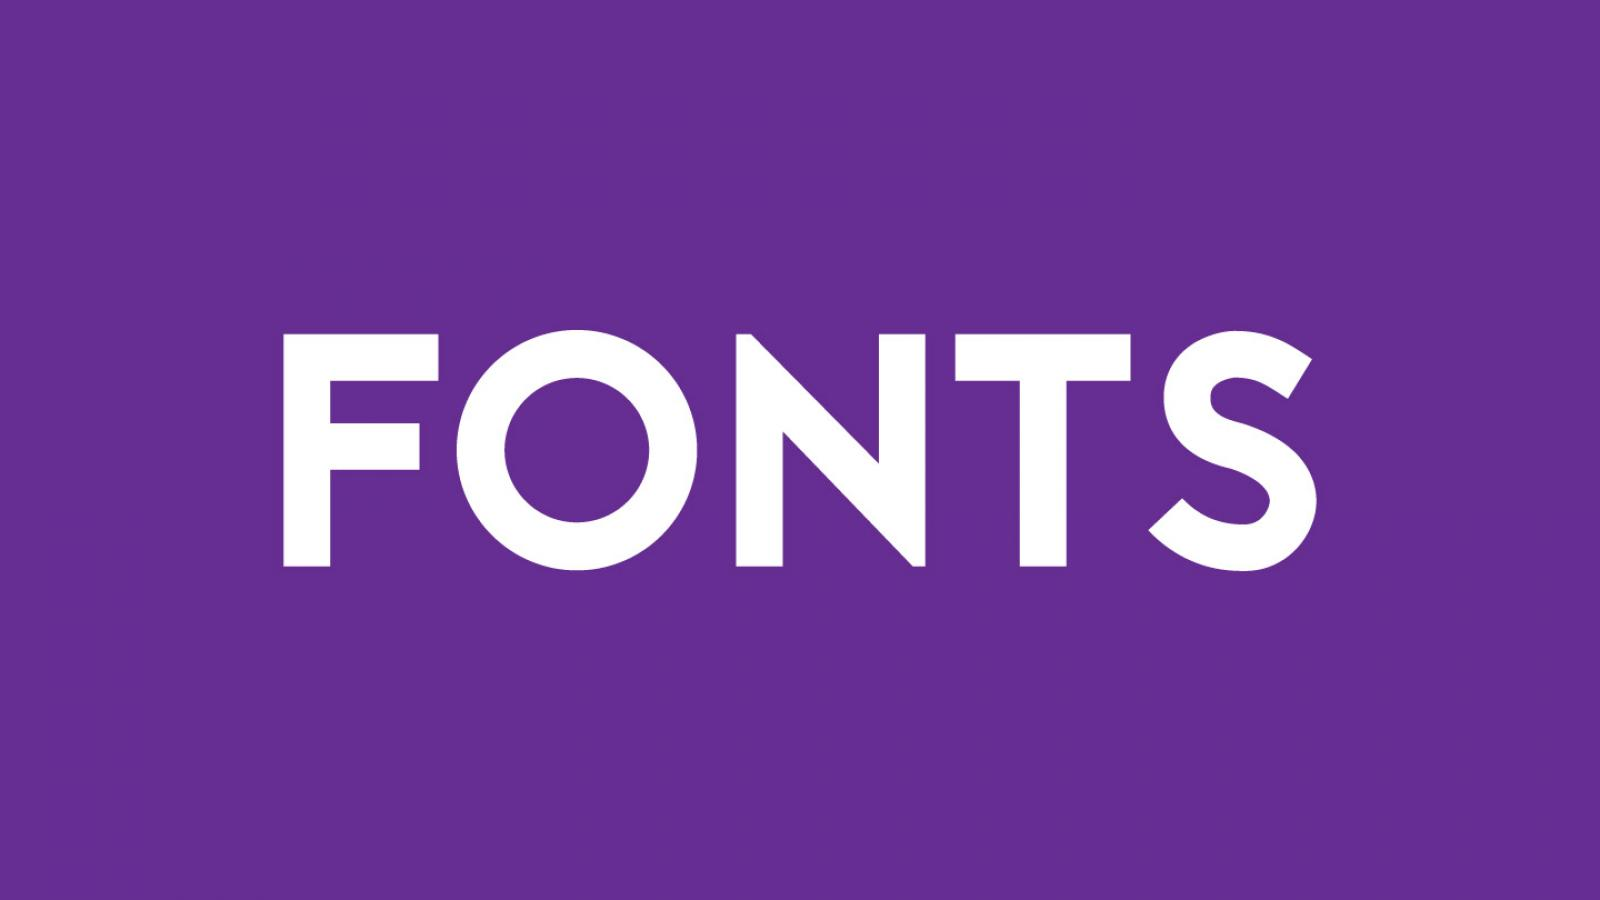 Friday Fresh Free Fonts - Metros, Althea, Jaapokki